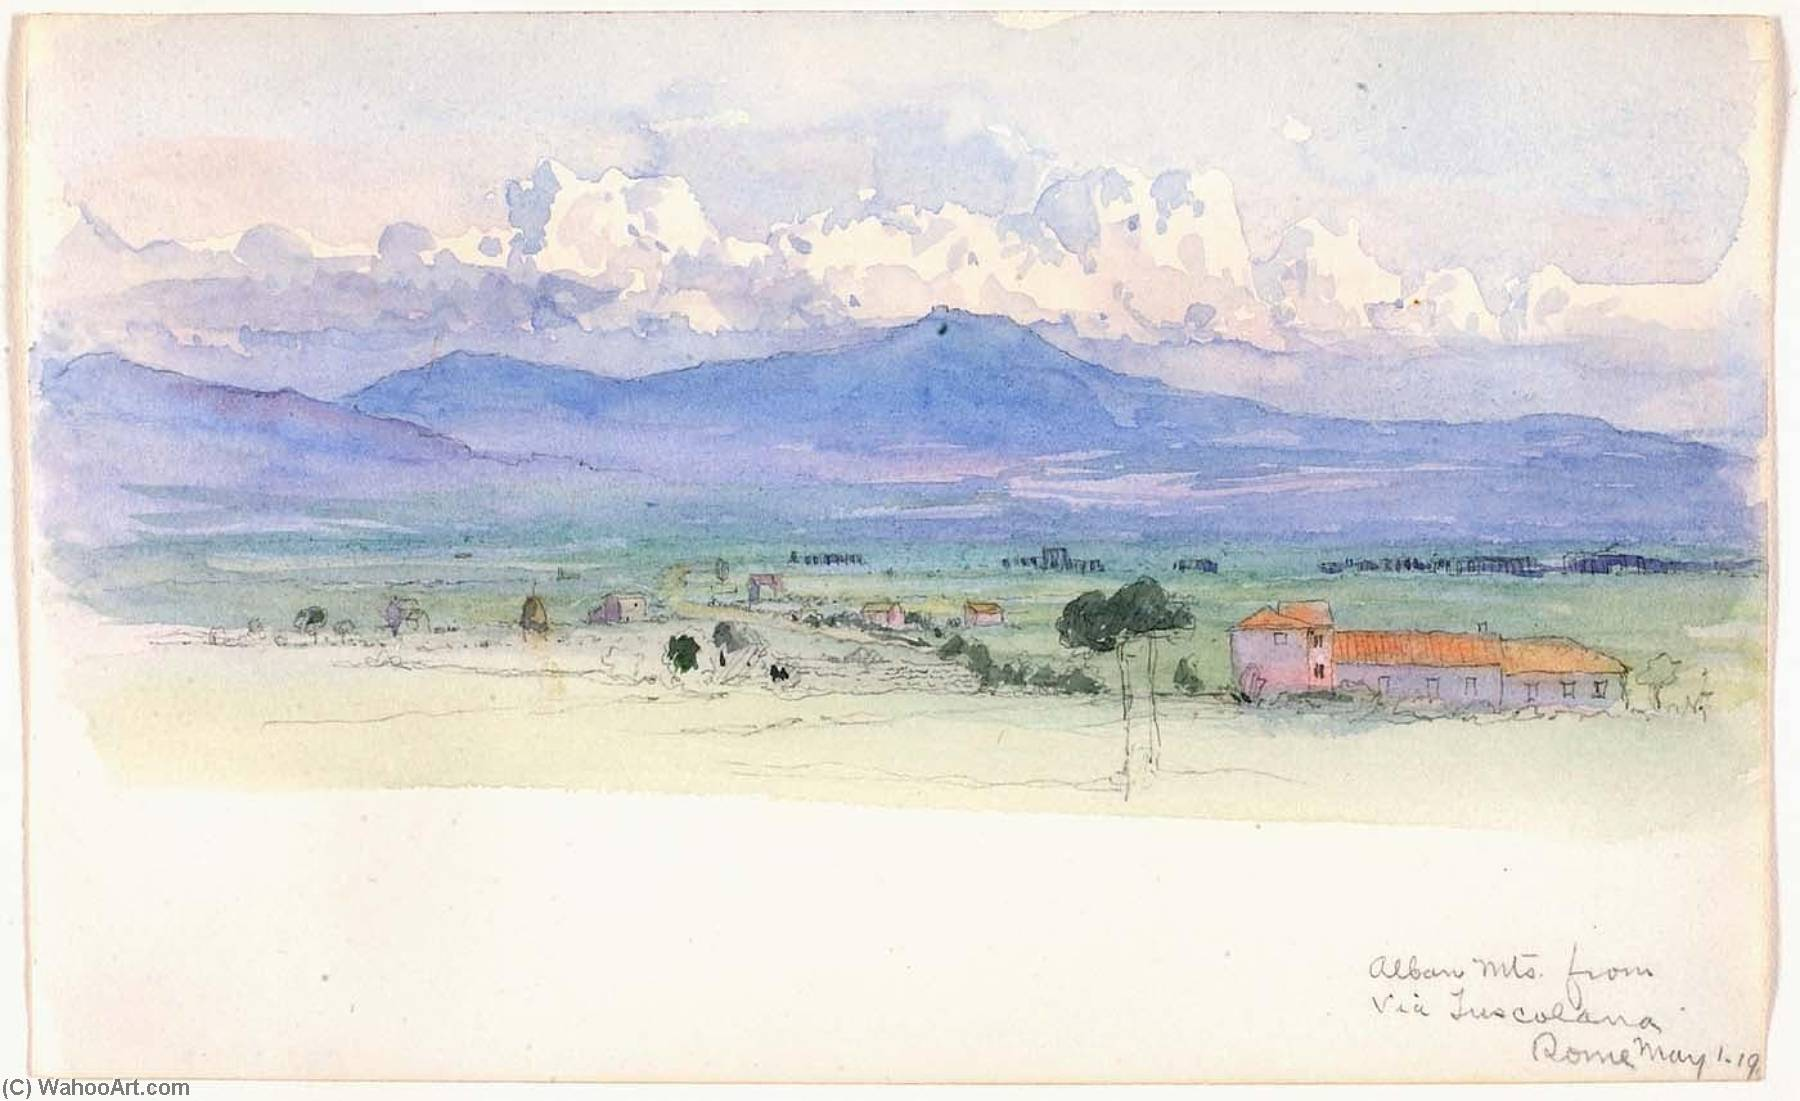 Wikioo.org - The Encyclopedia of Fine Arts - Painting, Artwork by George Elbert Burr - Alban Mountains from Via Tuscolana, Rome